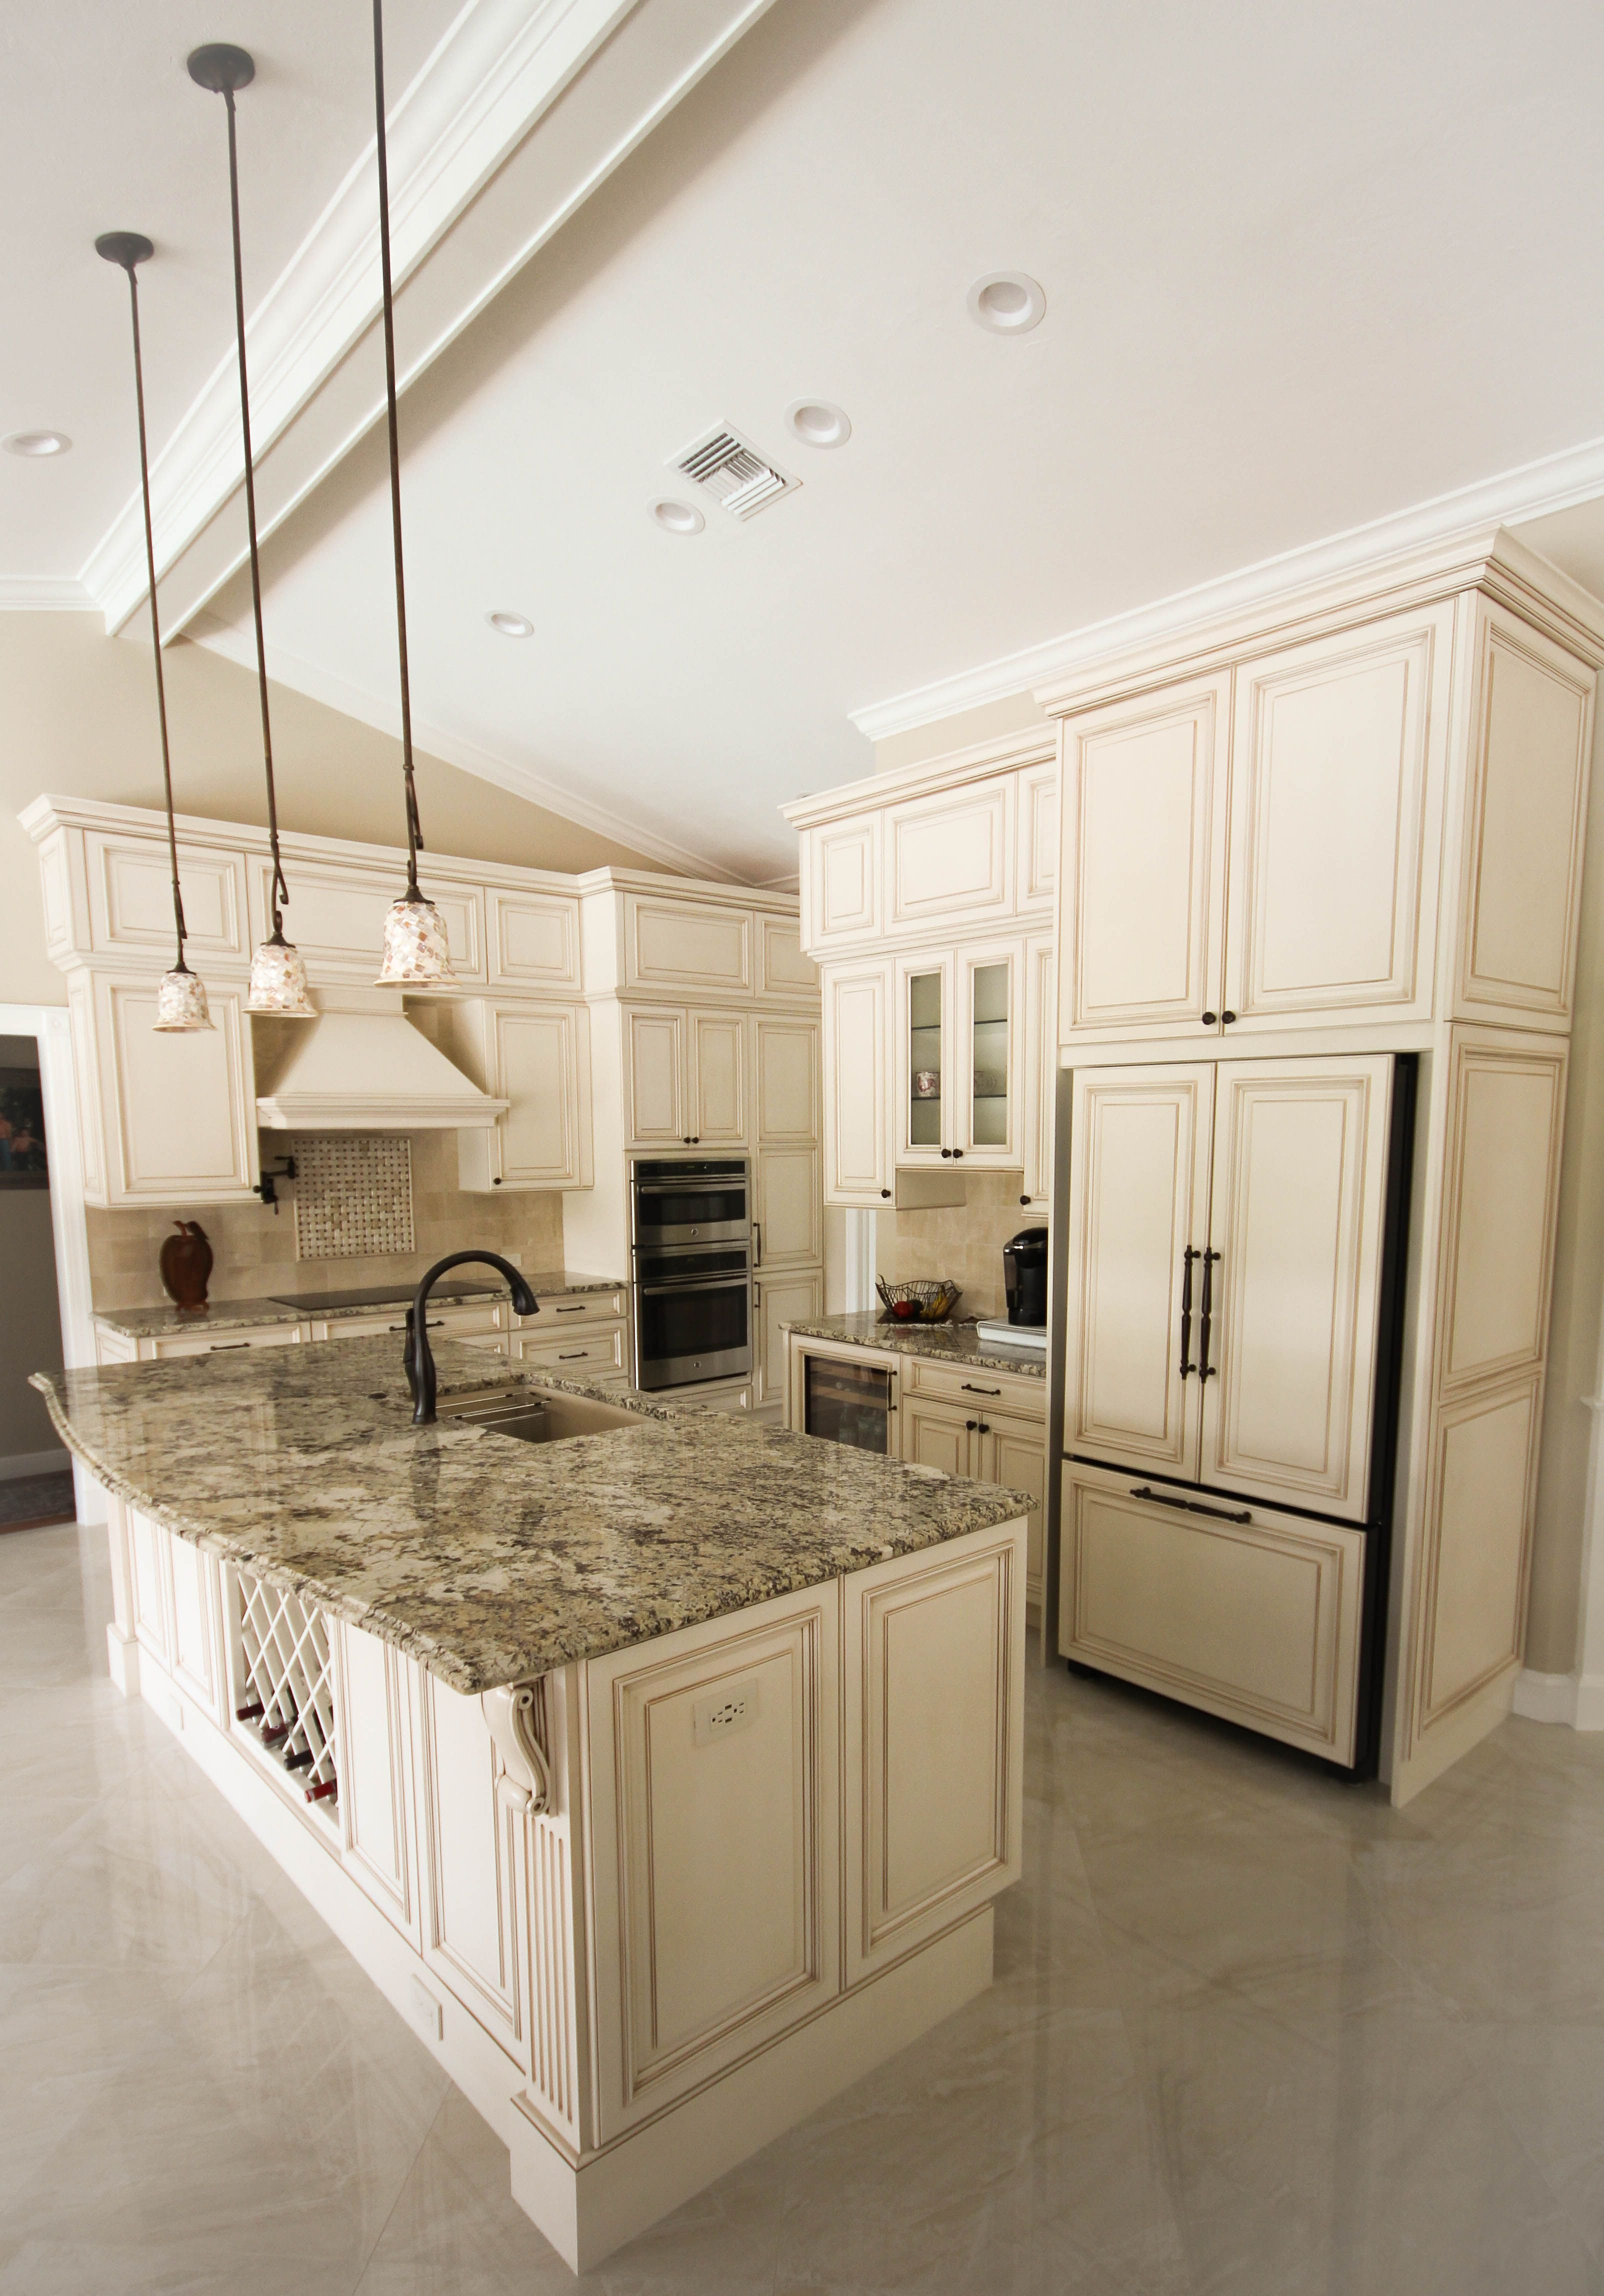 Kitchen Remodel Transitional Traditional White Cabinets Square Raised Panel Door Sty Traditional Kitchen Cabinets Kitchen Remodel Remodeling Renovation